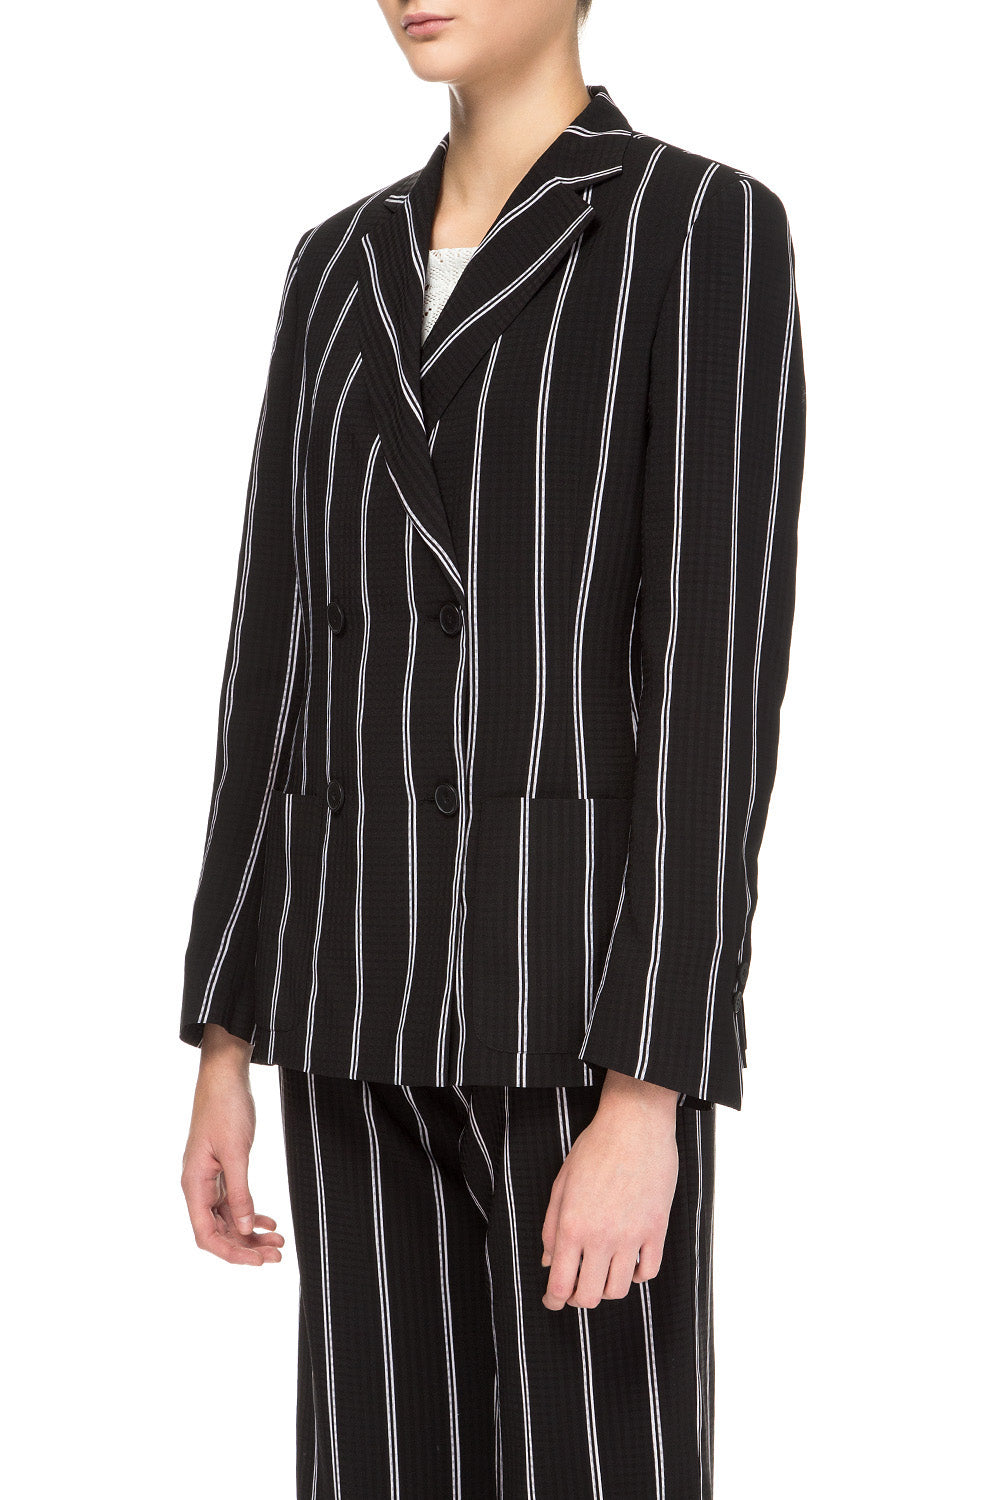 Black striped jacket